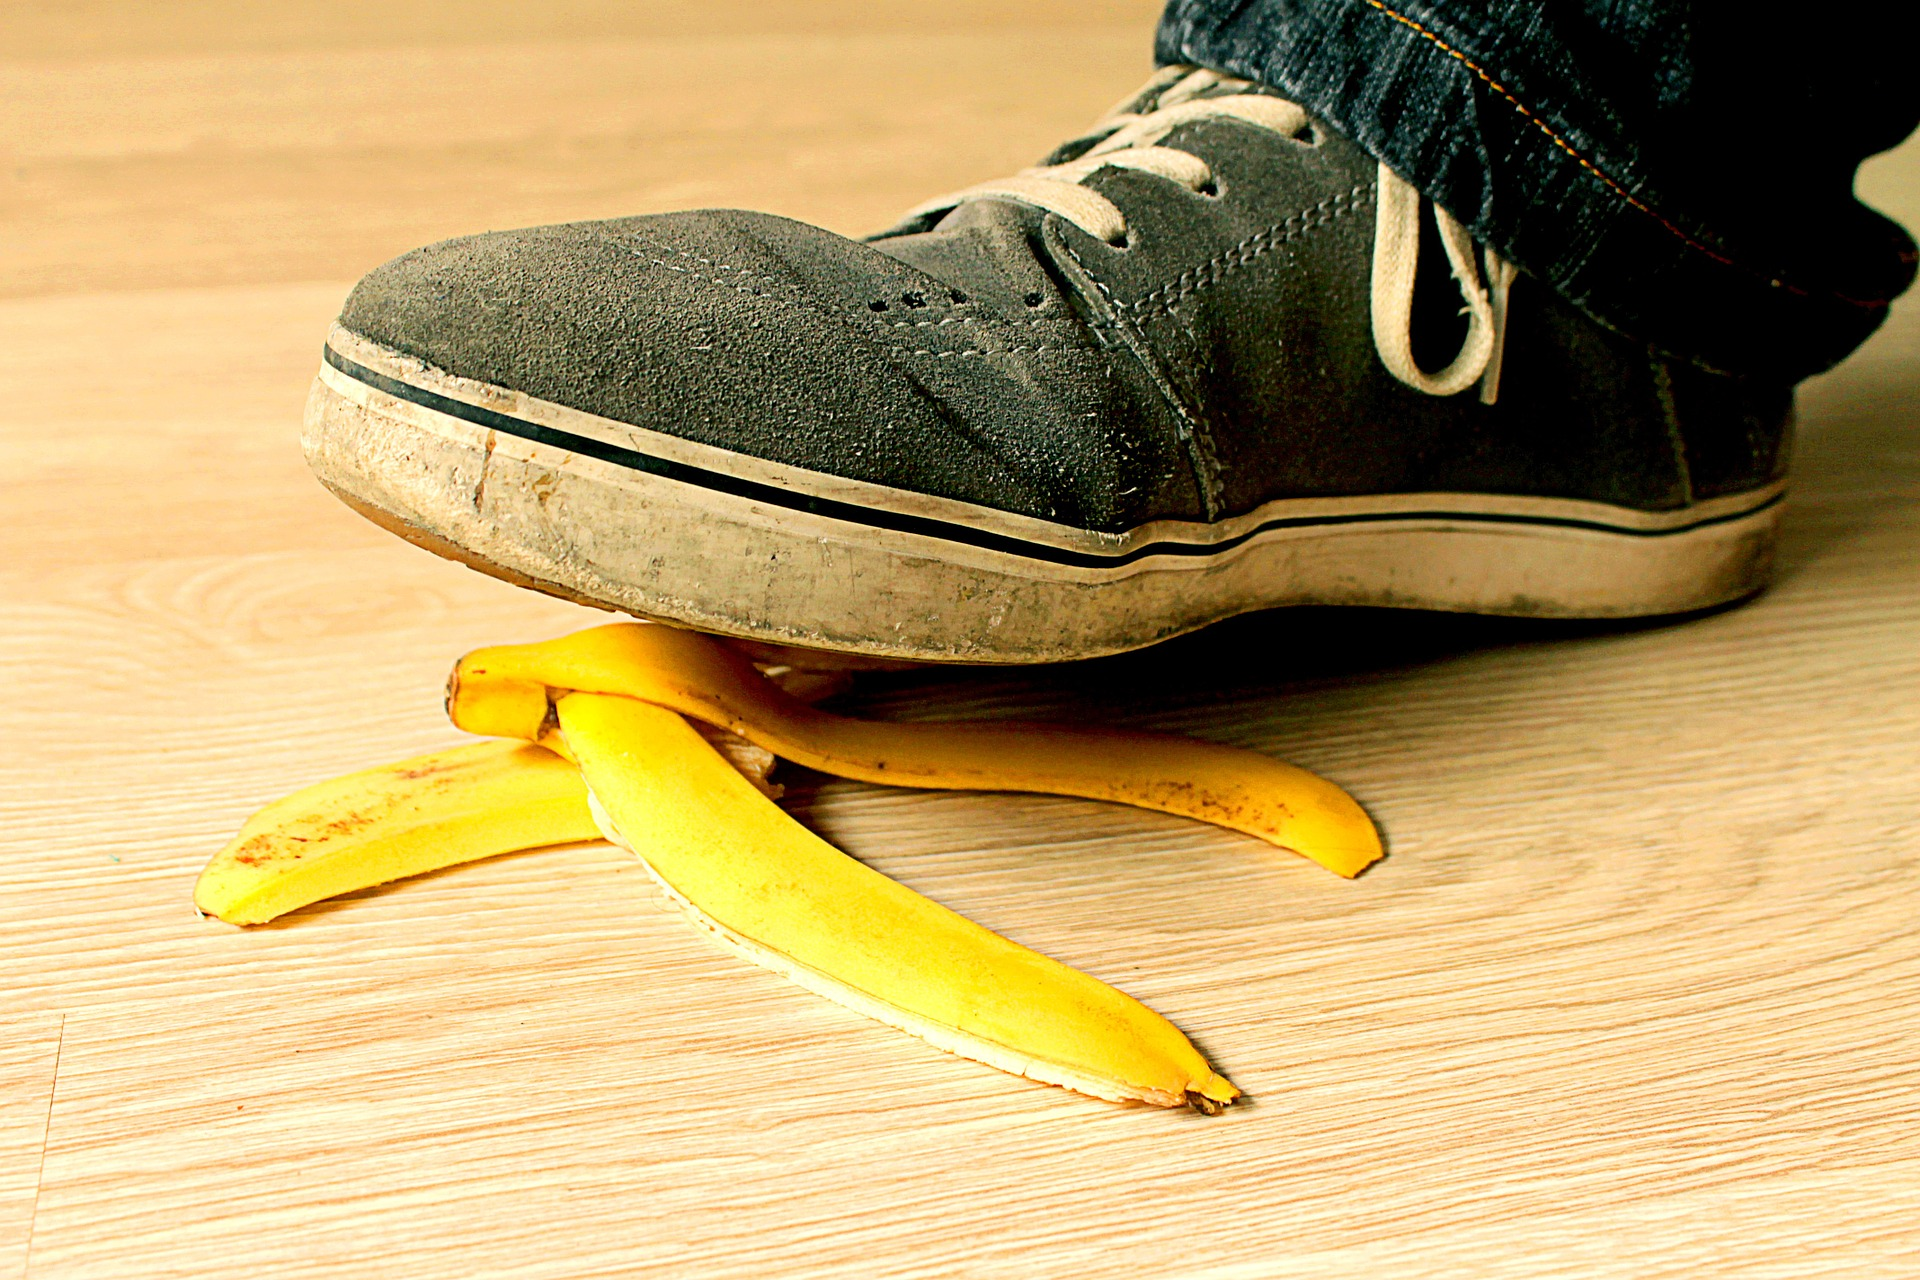 Slip and Fall Accidents: When a Banana Peel Can Cost Big Bucks